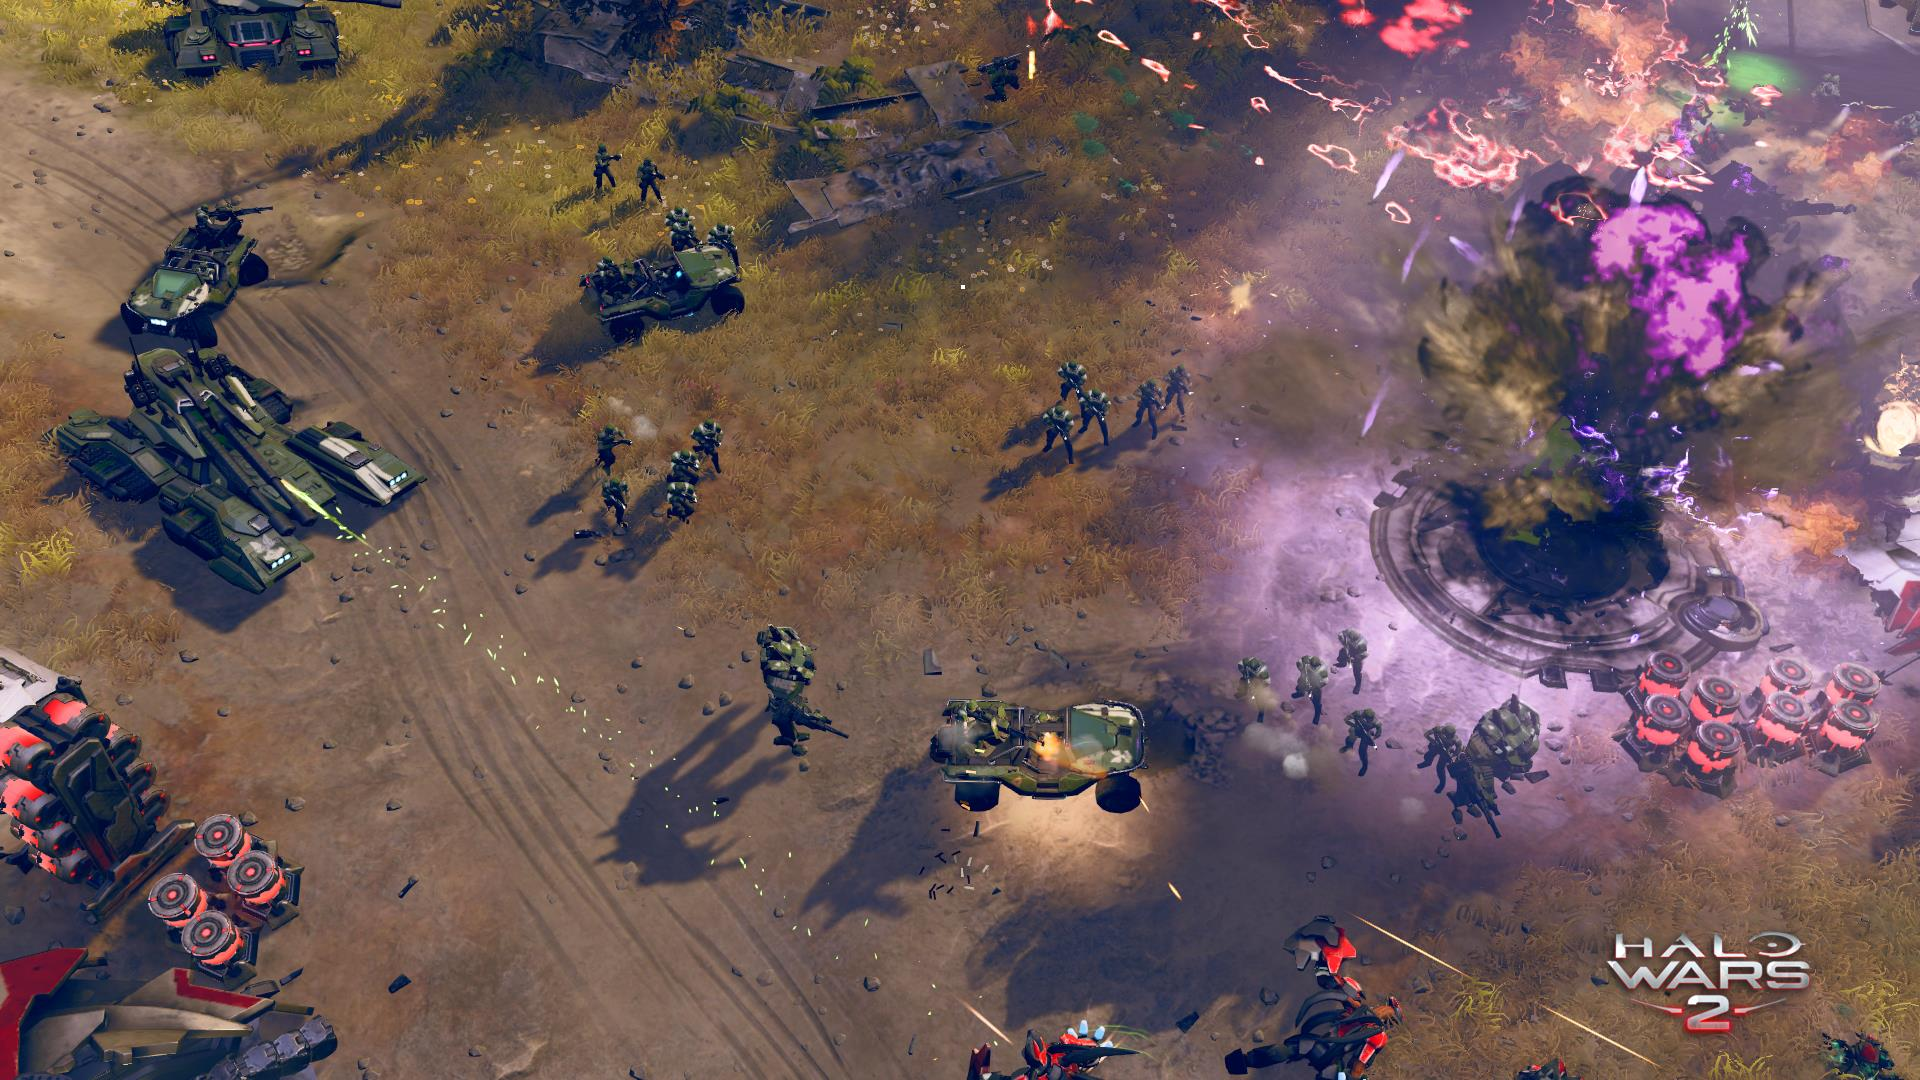 Take a look at some Halo Wars 2 gameplay running on PC   VG247